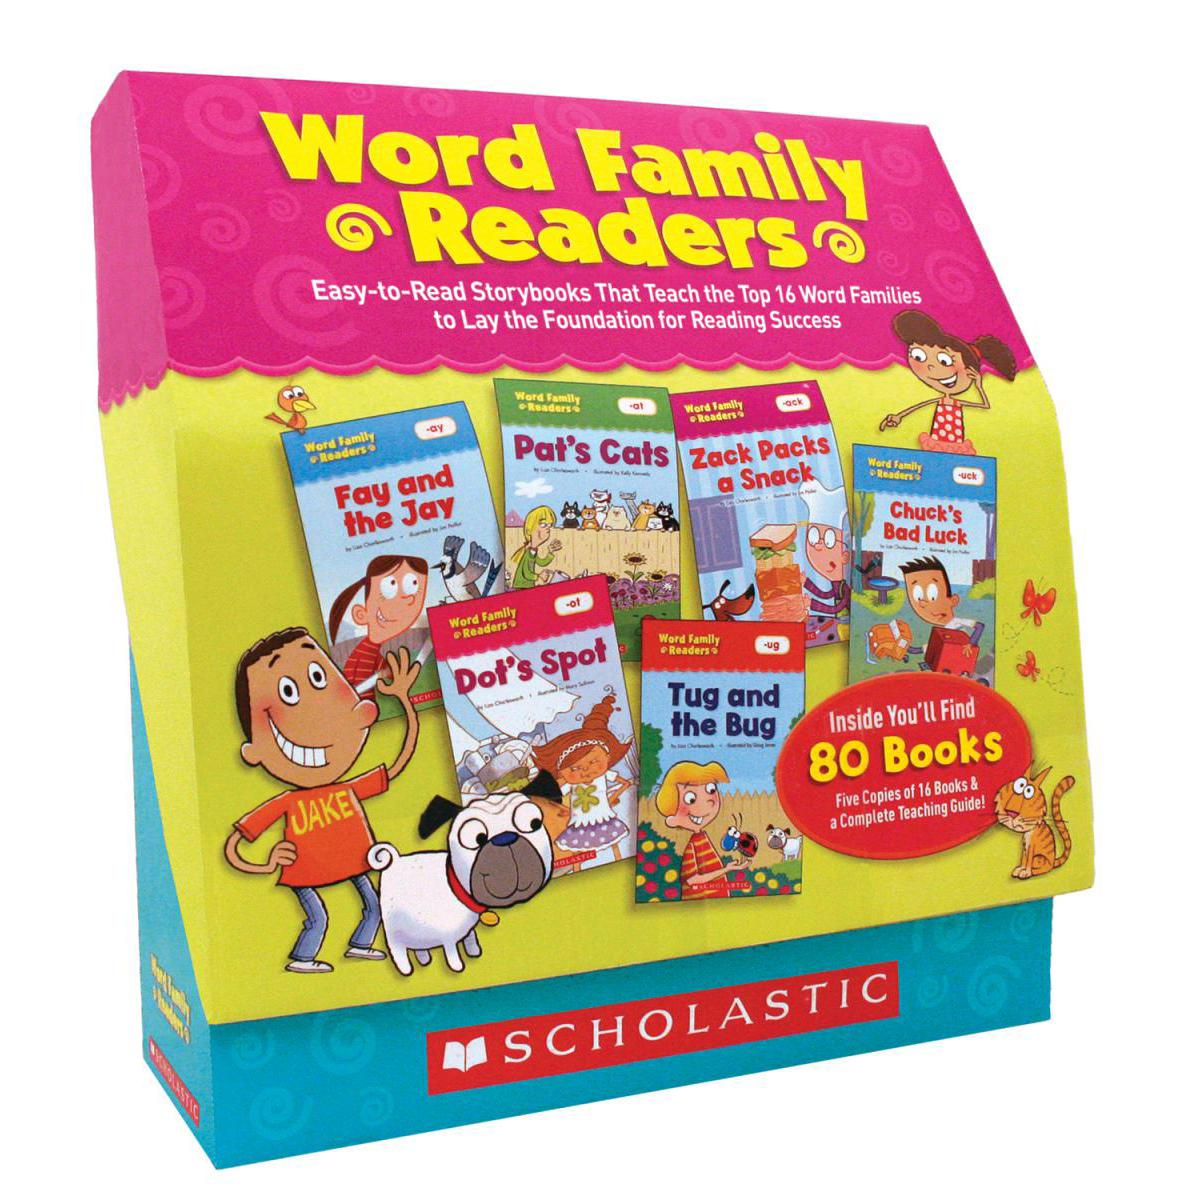 Word Family Readers Box Set